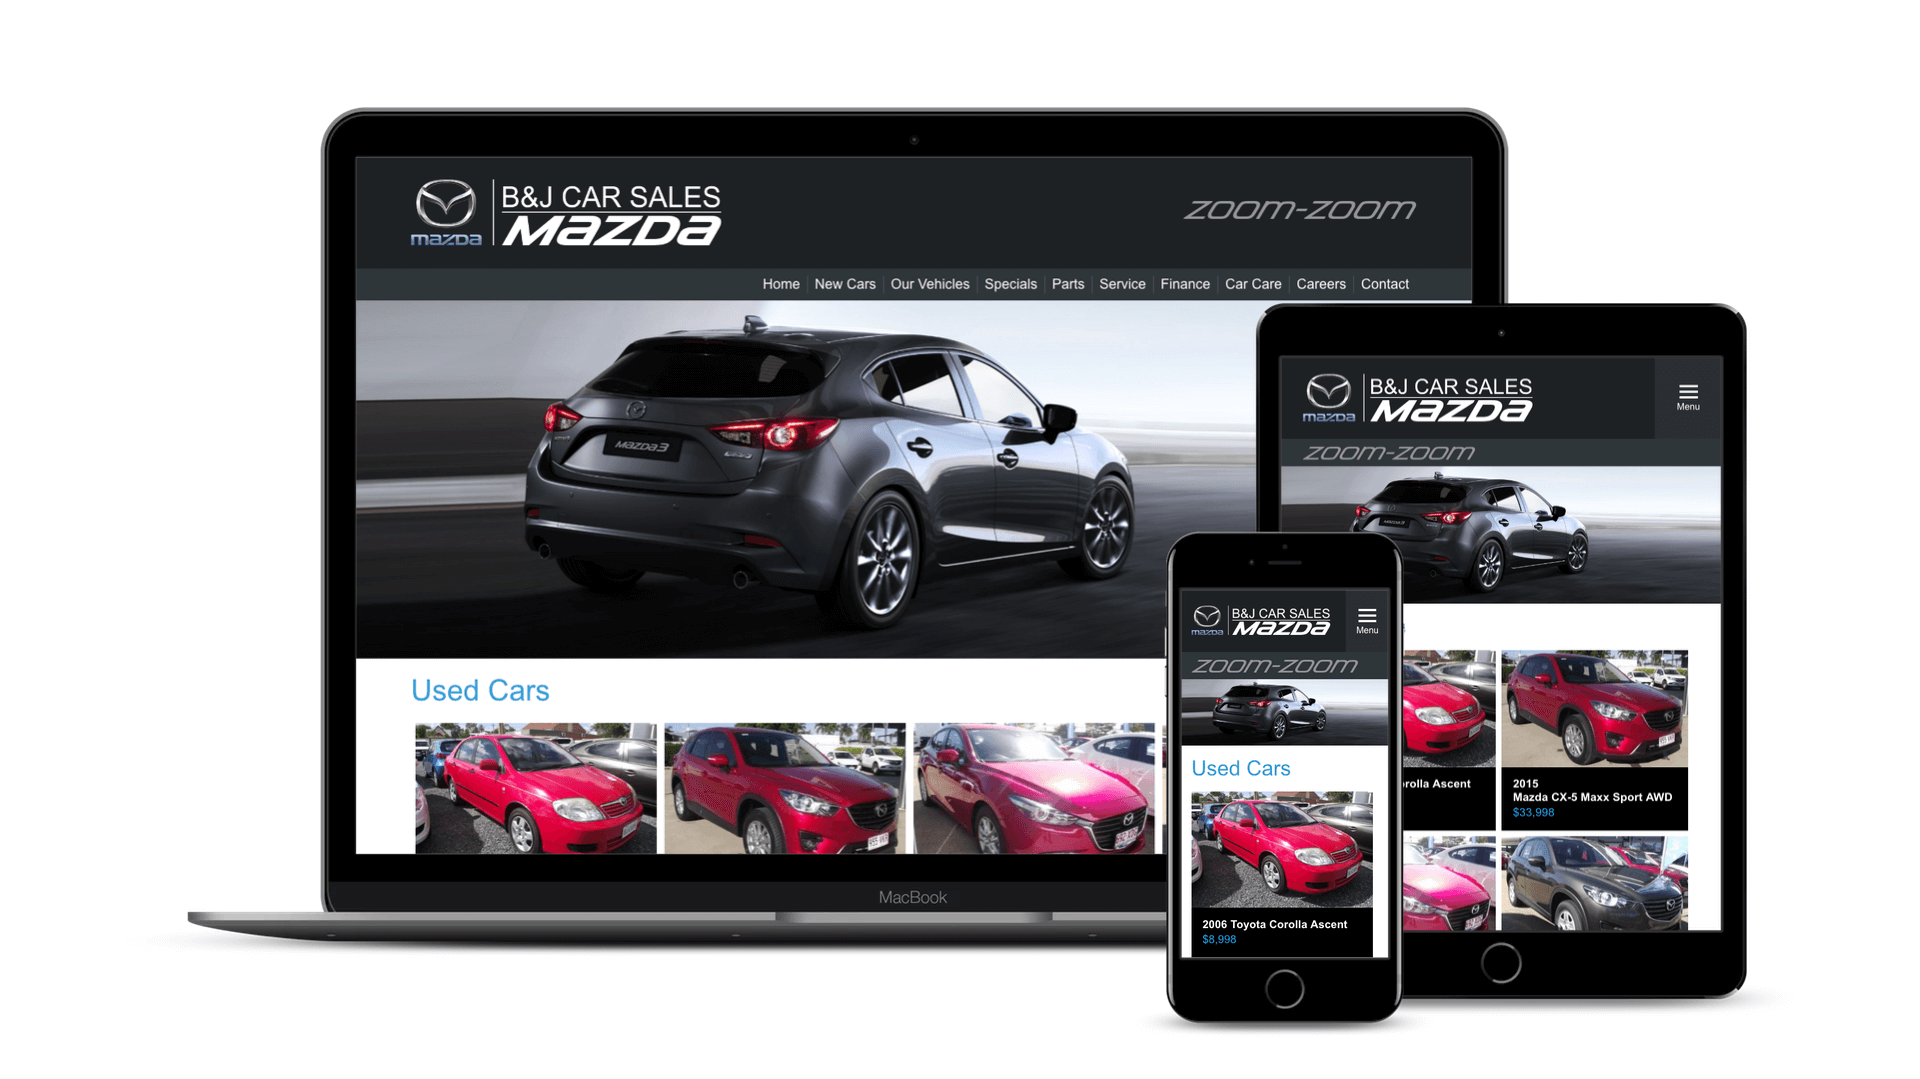 kramer glory picture calgary alberta sales in experience en mazda view the news by